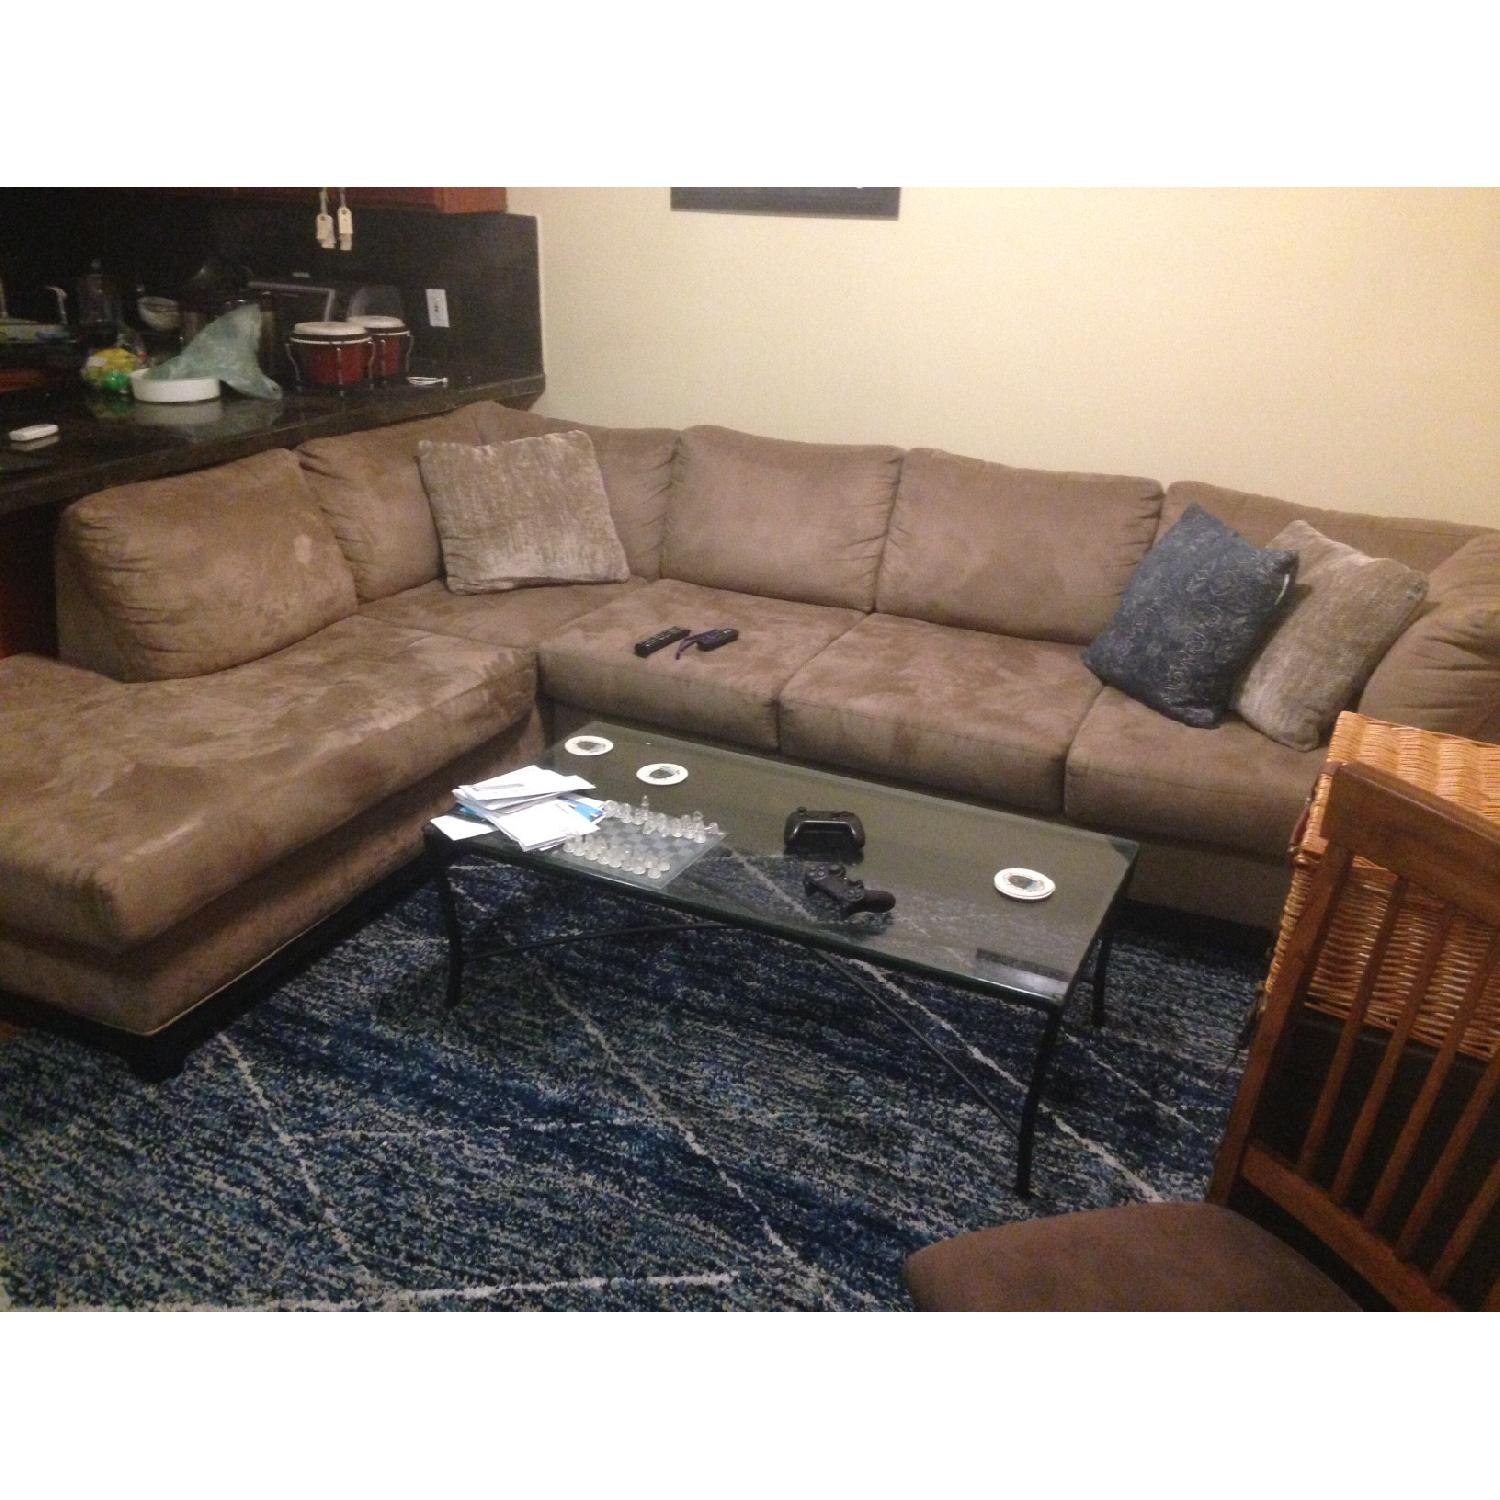 Aspen Home Tan Suede 2 Piece Sectional Sofa ...